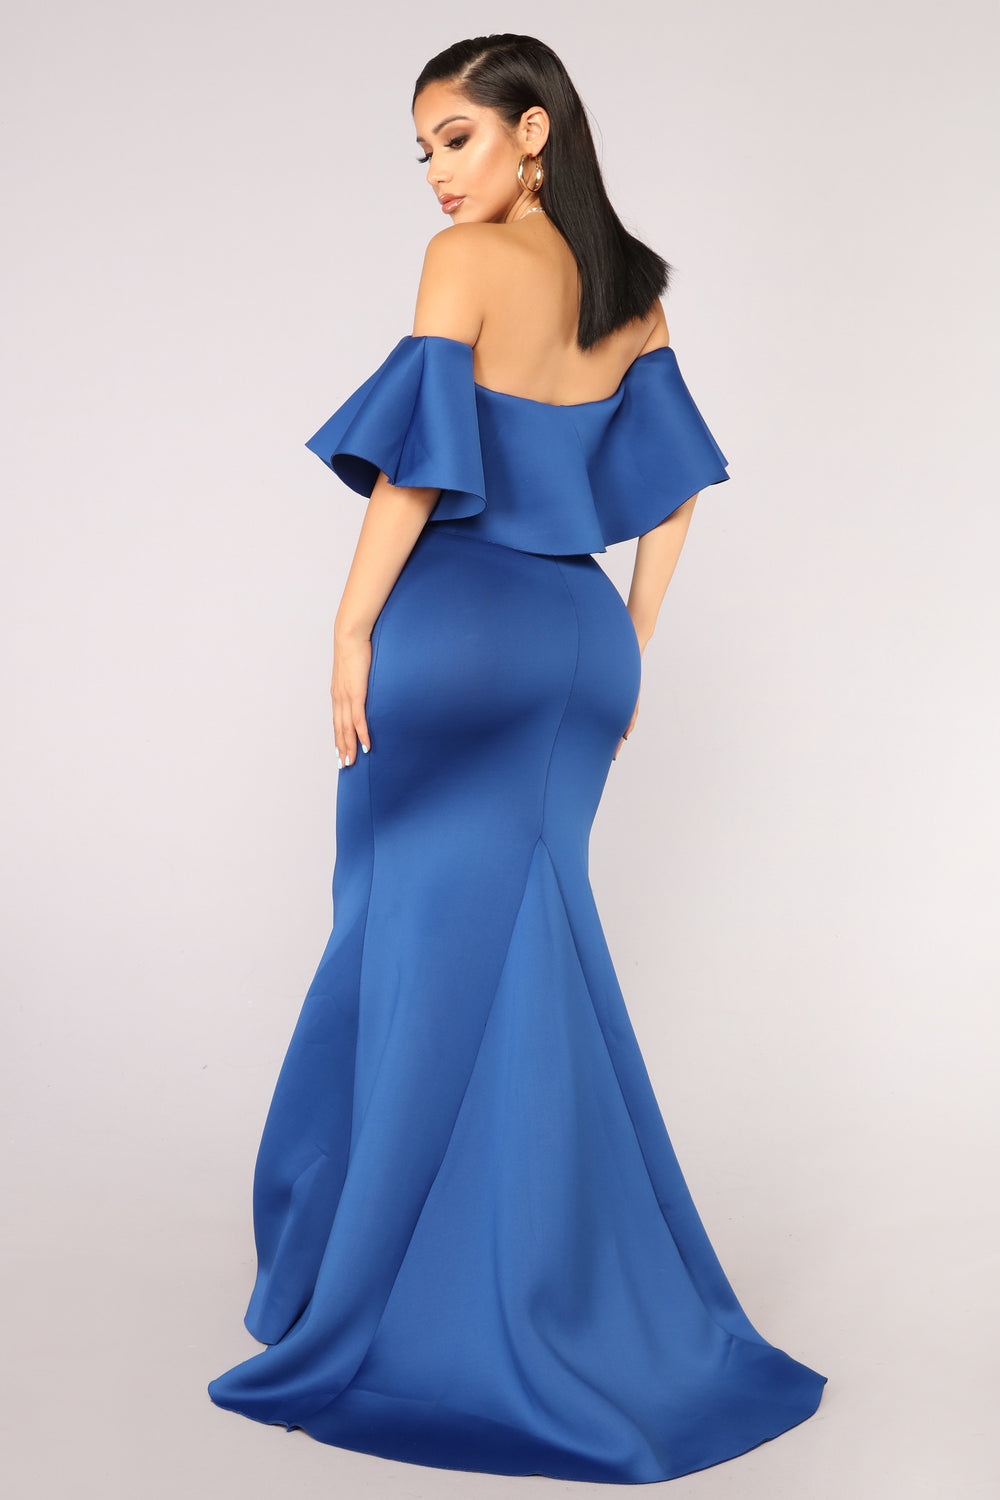 Cute But Salty Mermaid Dress - Royal